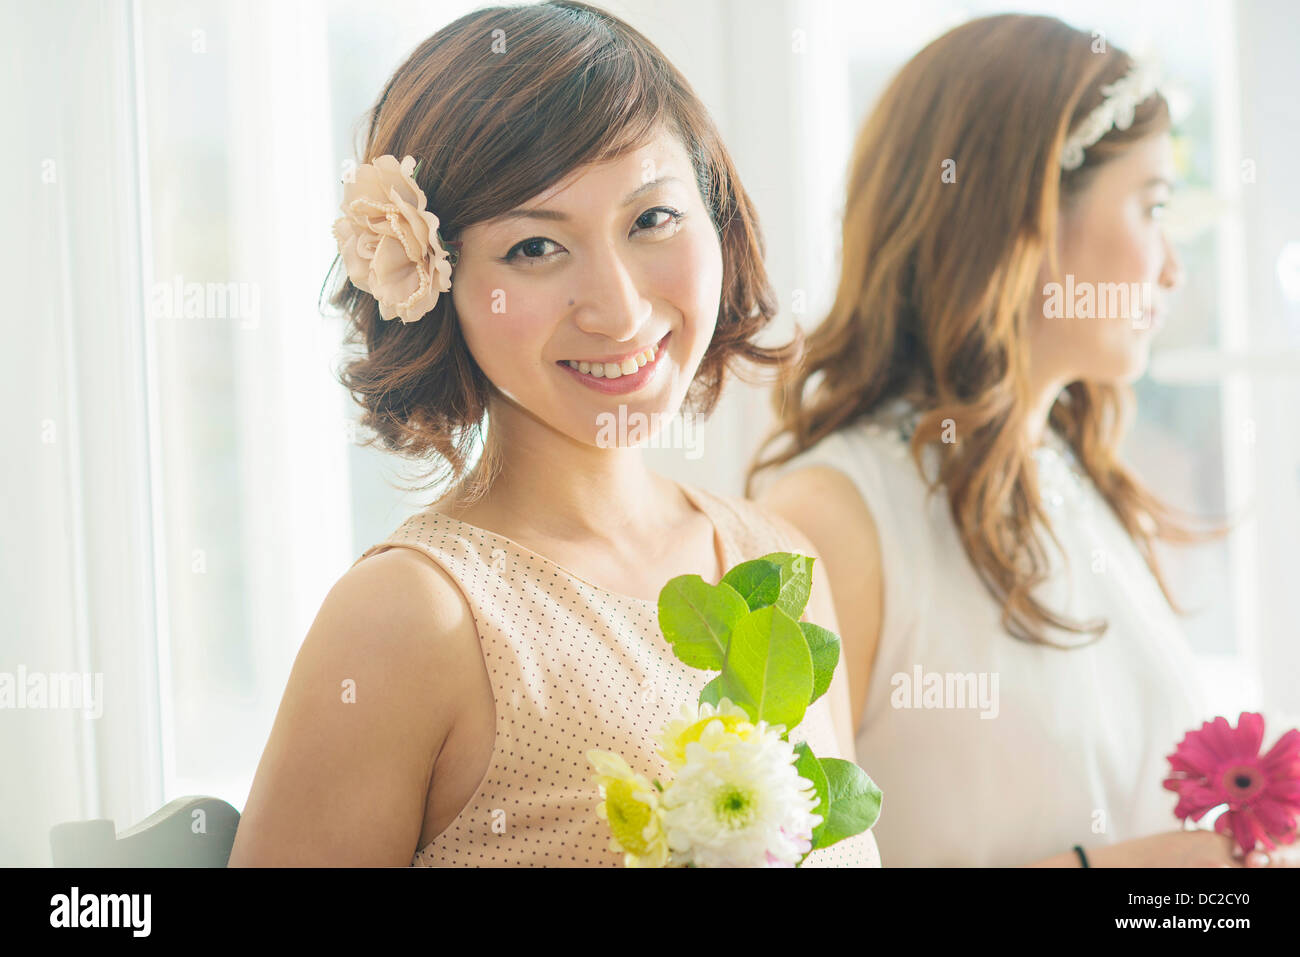 Smiling woman with flower looking at camera - Stock Image